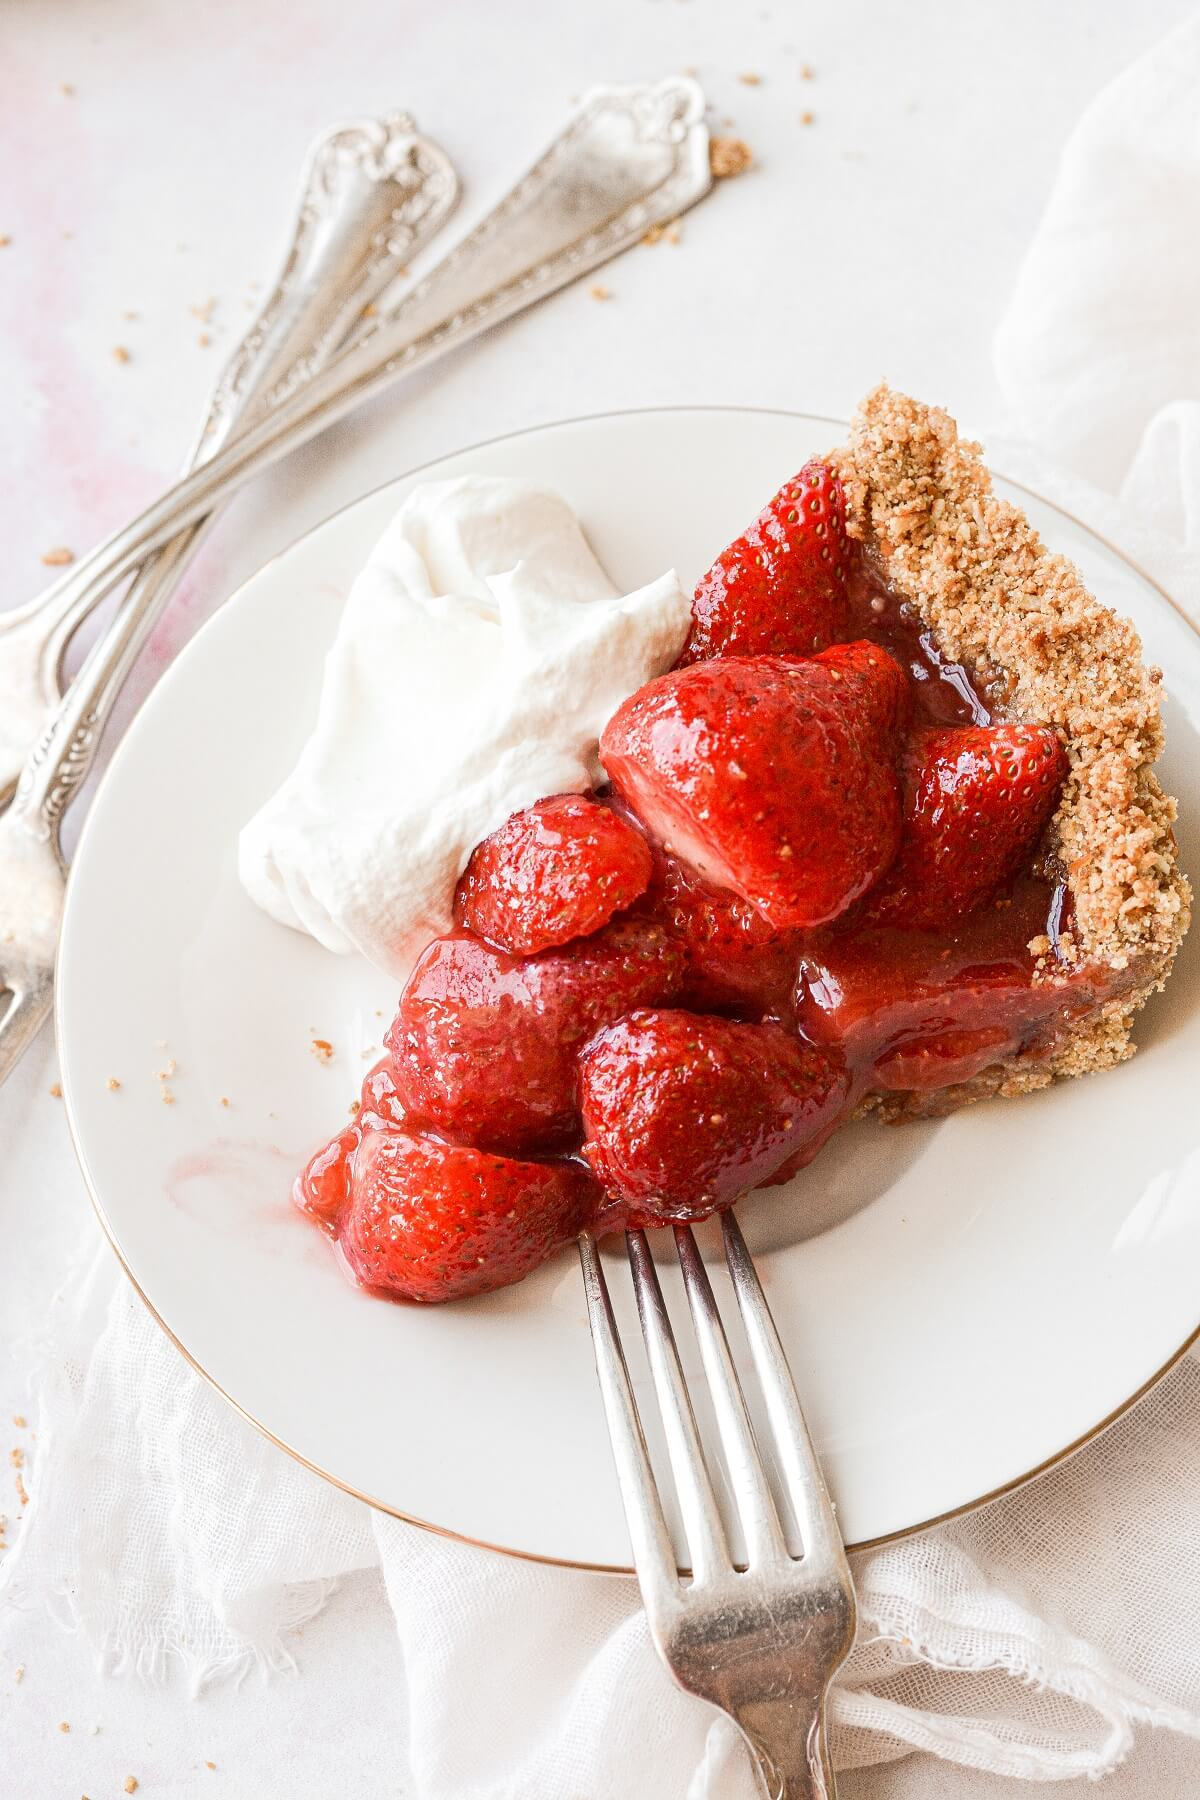 A slice of strawberry pretzel pie with whipped cream.